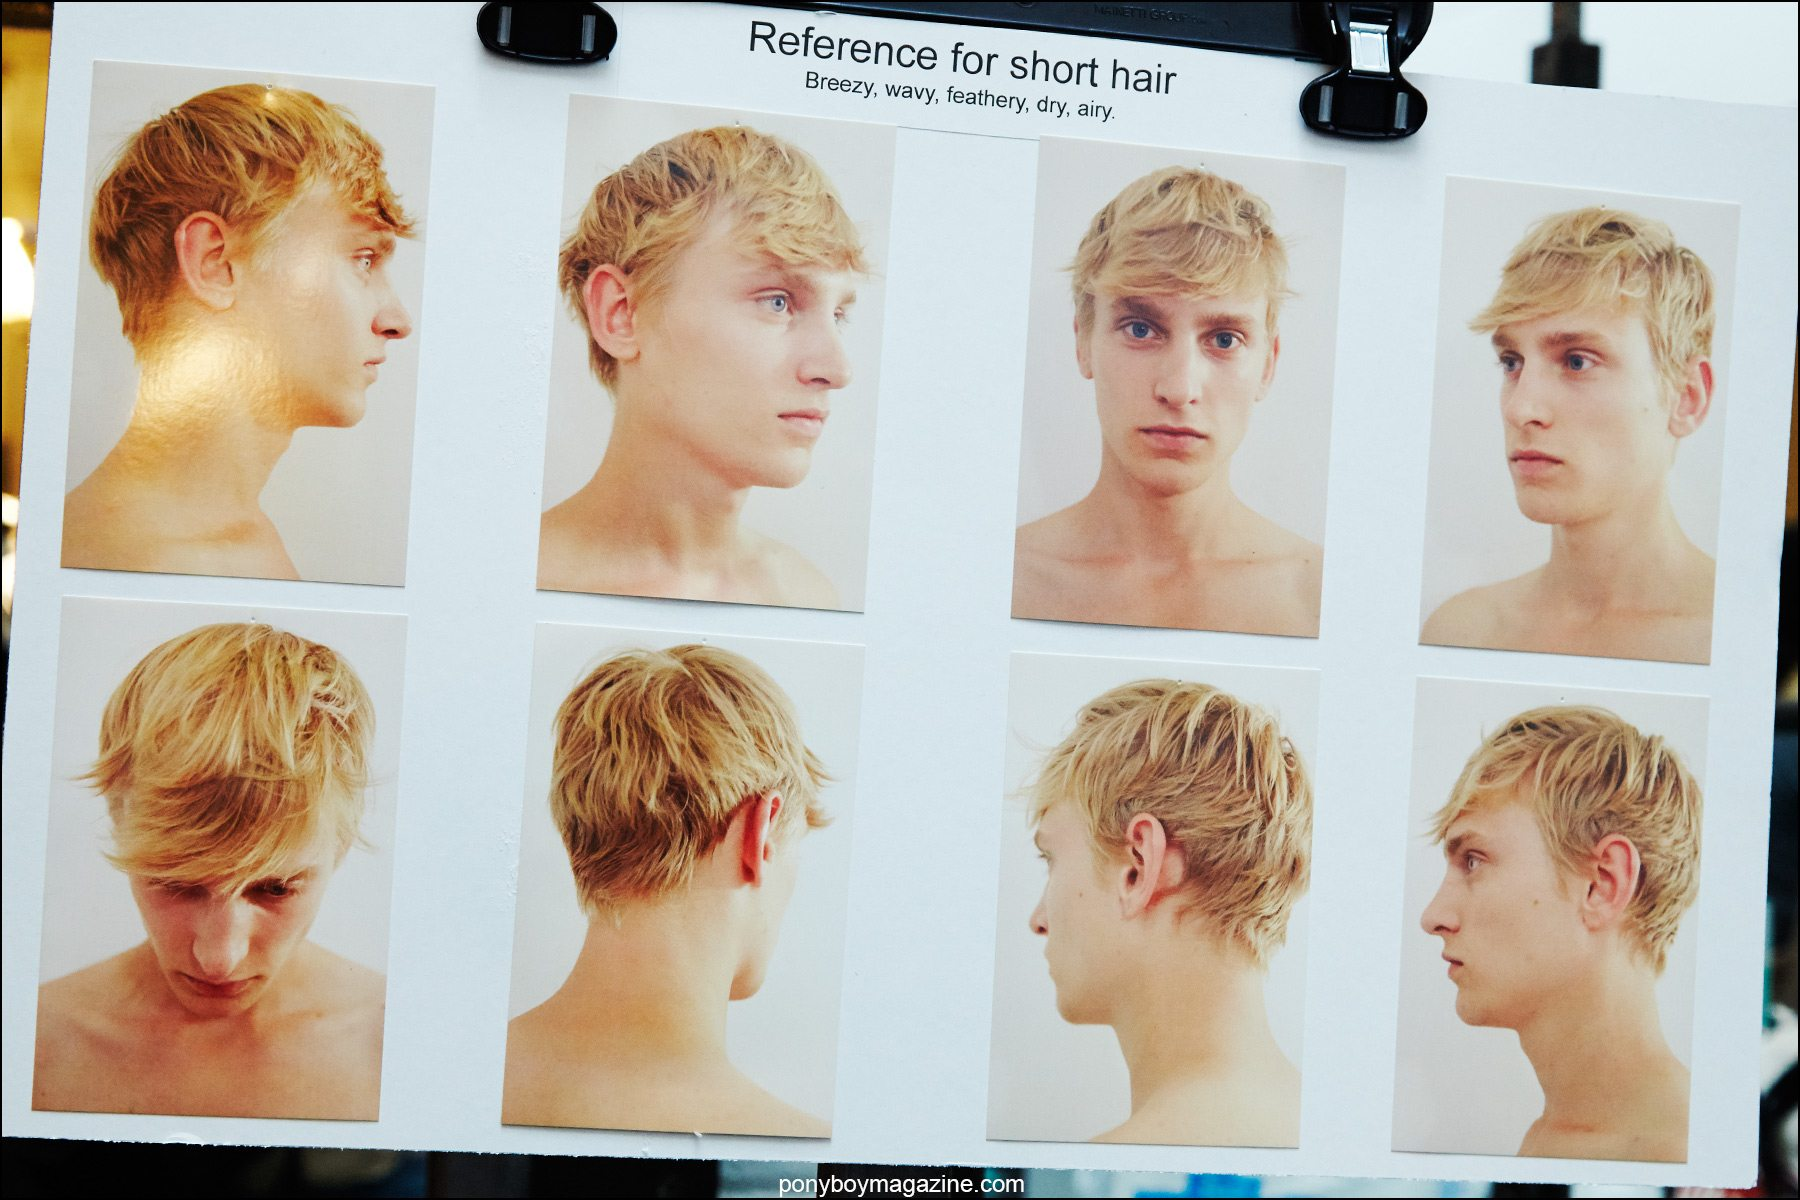 Hair references for Fingers Crossed S/S 2016 presentation at Industria Studios New York. Photograph by Alexander Thompson for Ponyboy magazine.